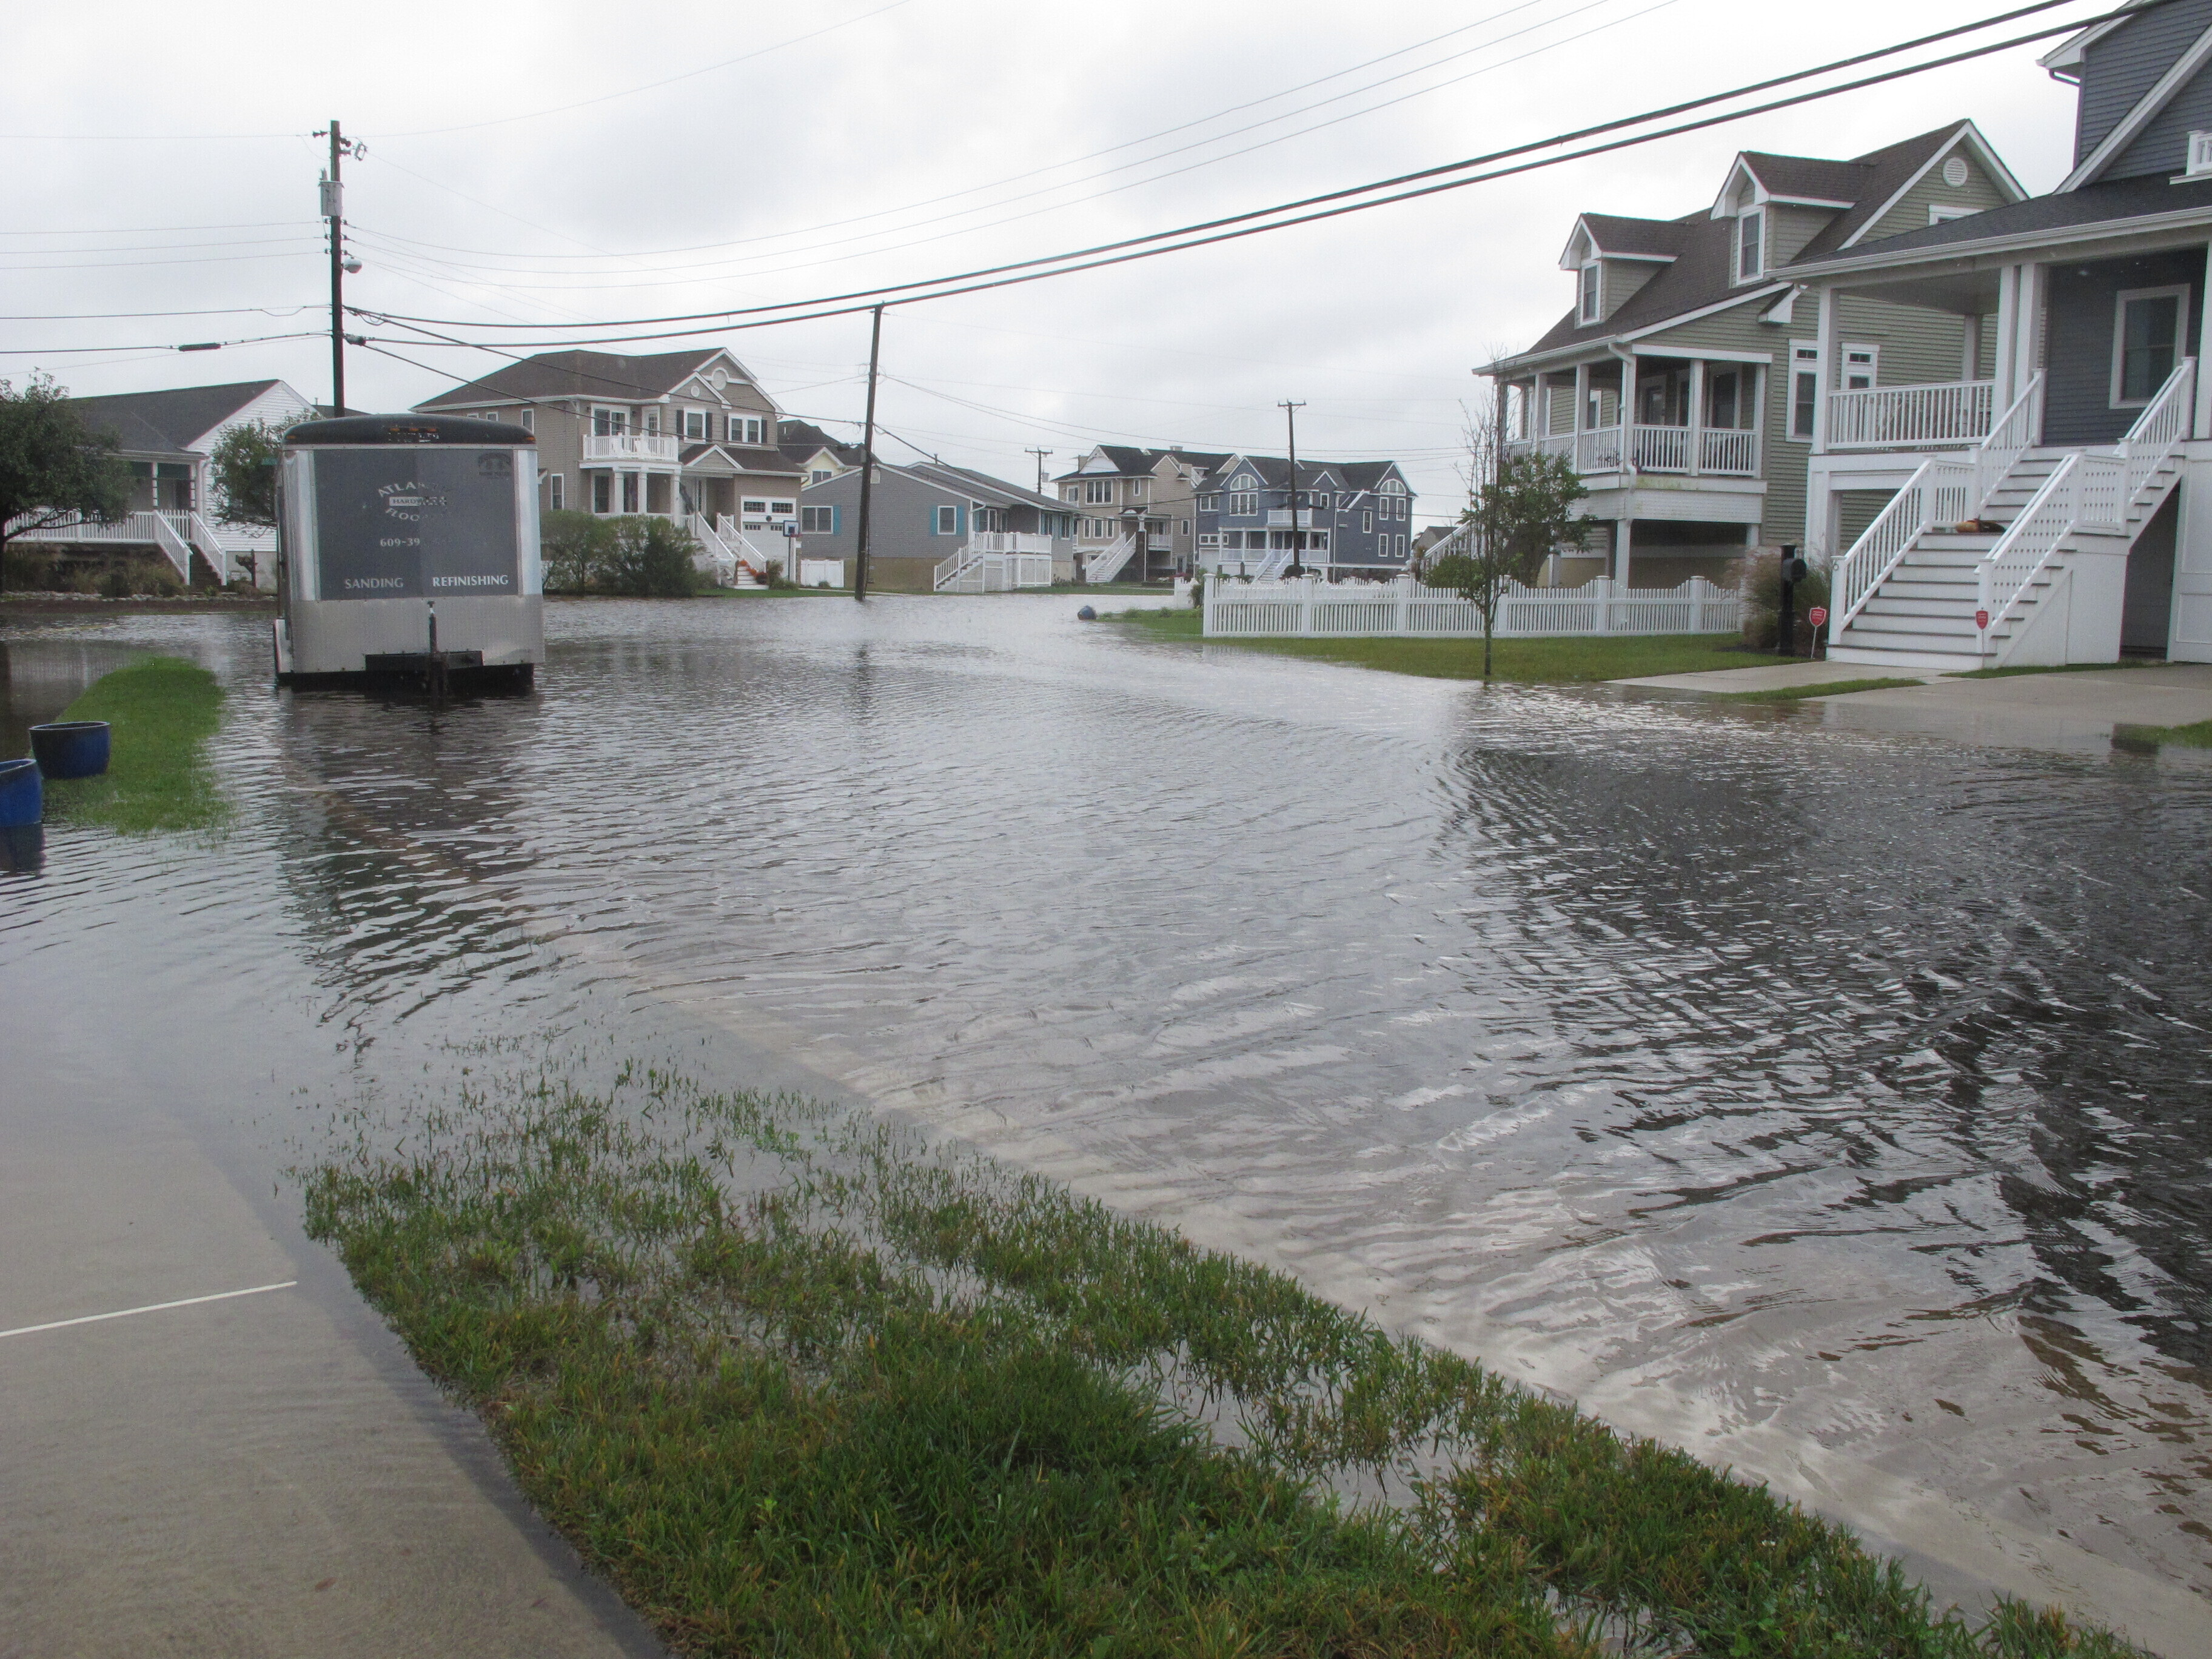 Amid Rising Seas, 'Dry' Jersey Shore Resort Is Wetter Than It Likes